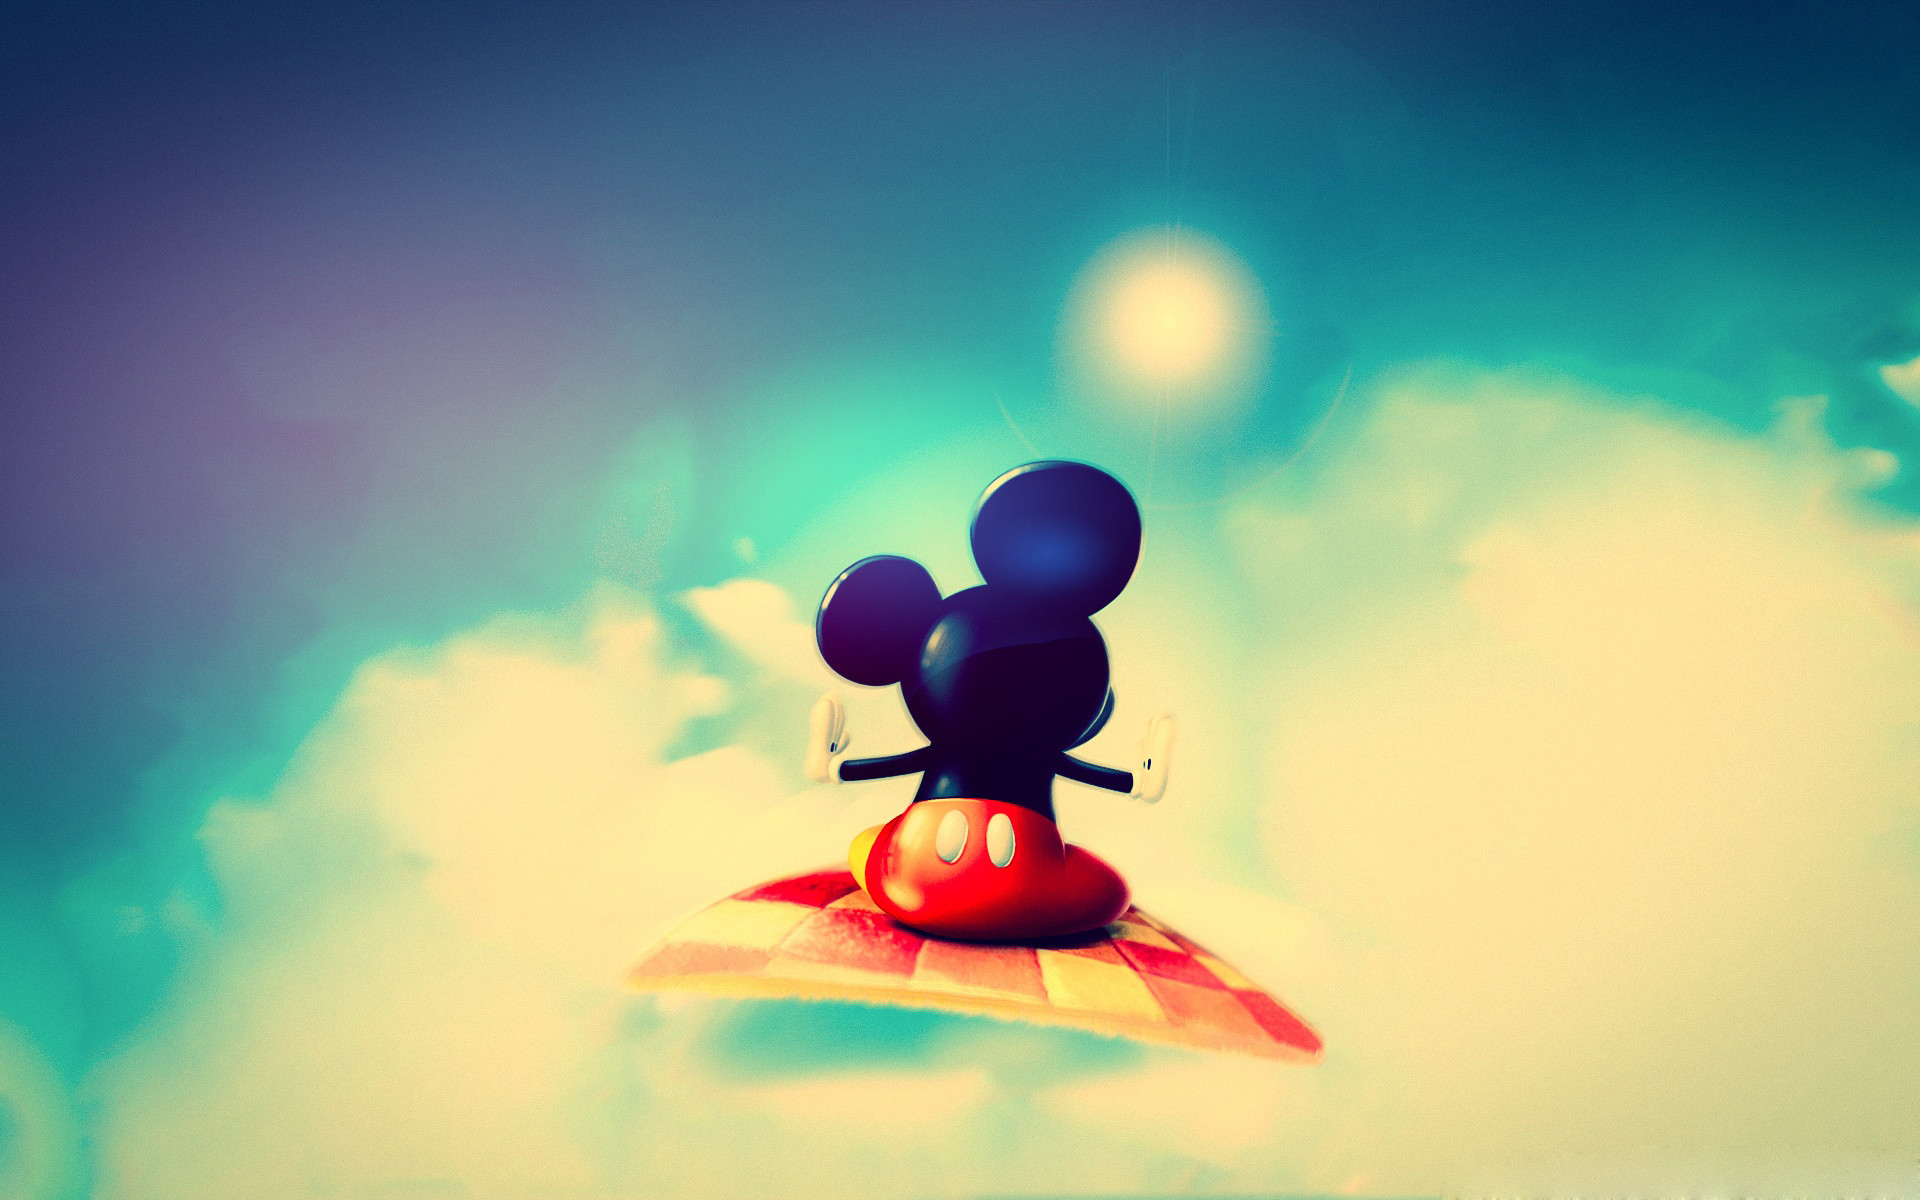 Cool Wallpaper High Quality Disney - 402956  You Should Have_228511.jpg